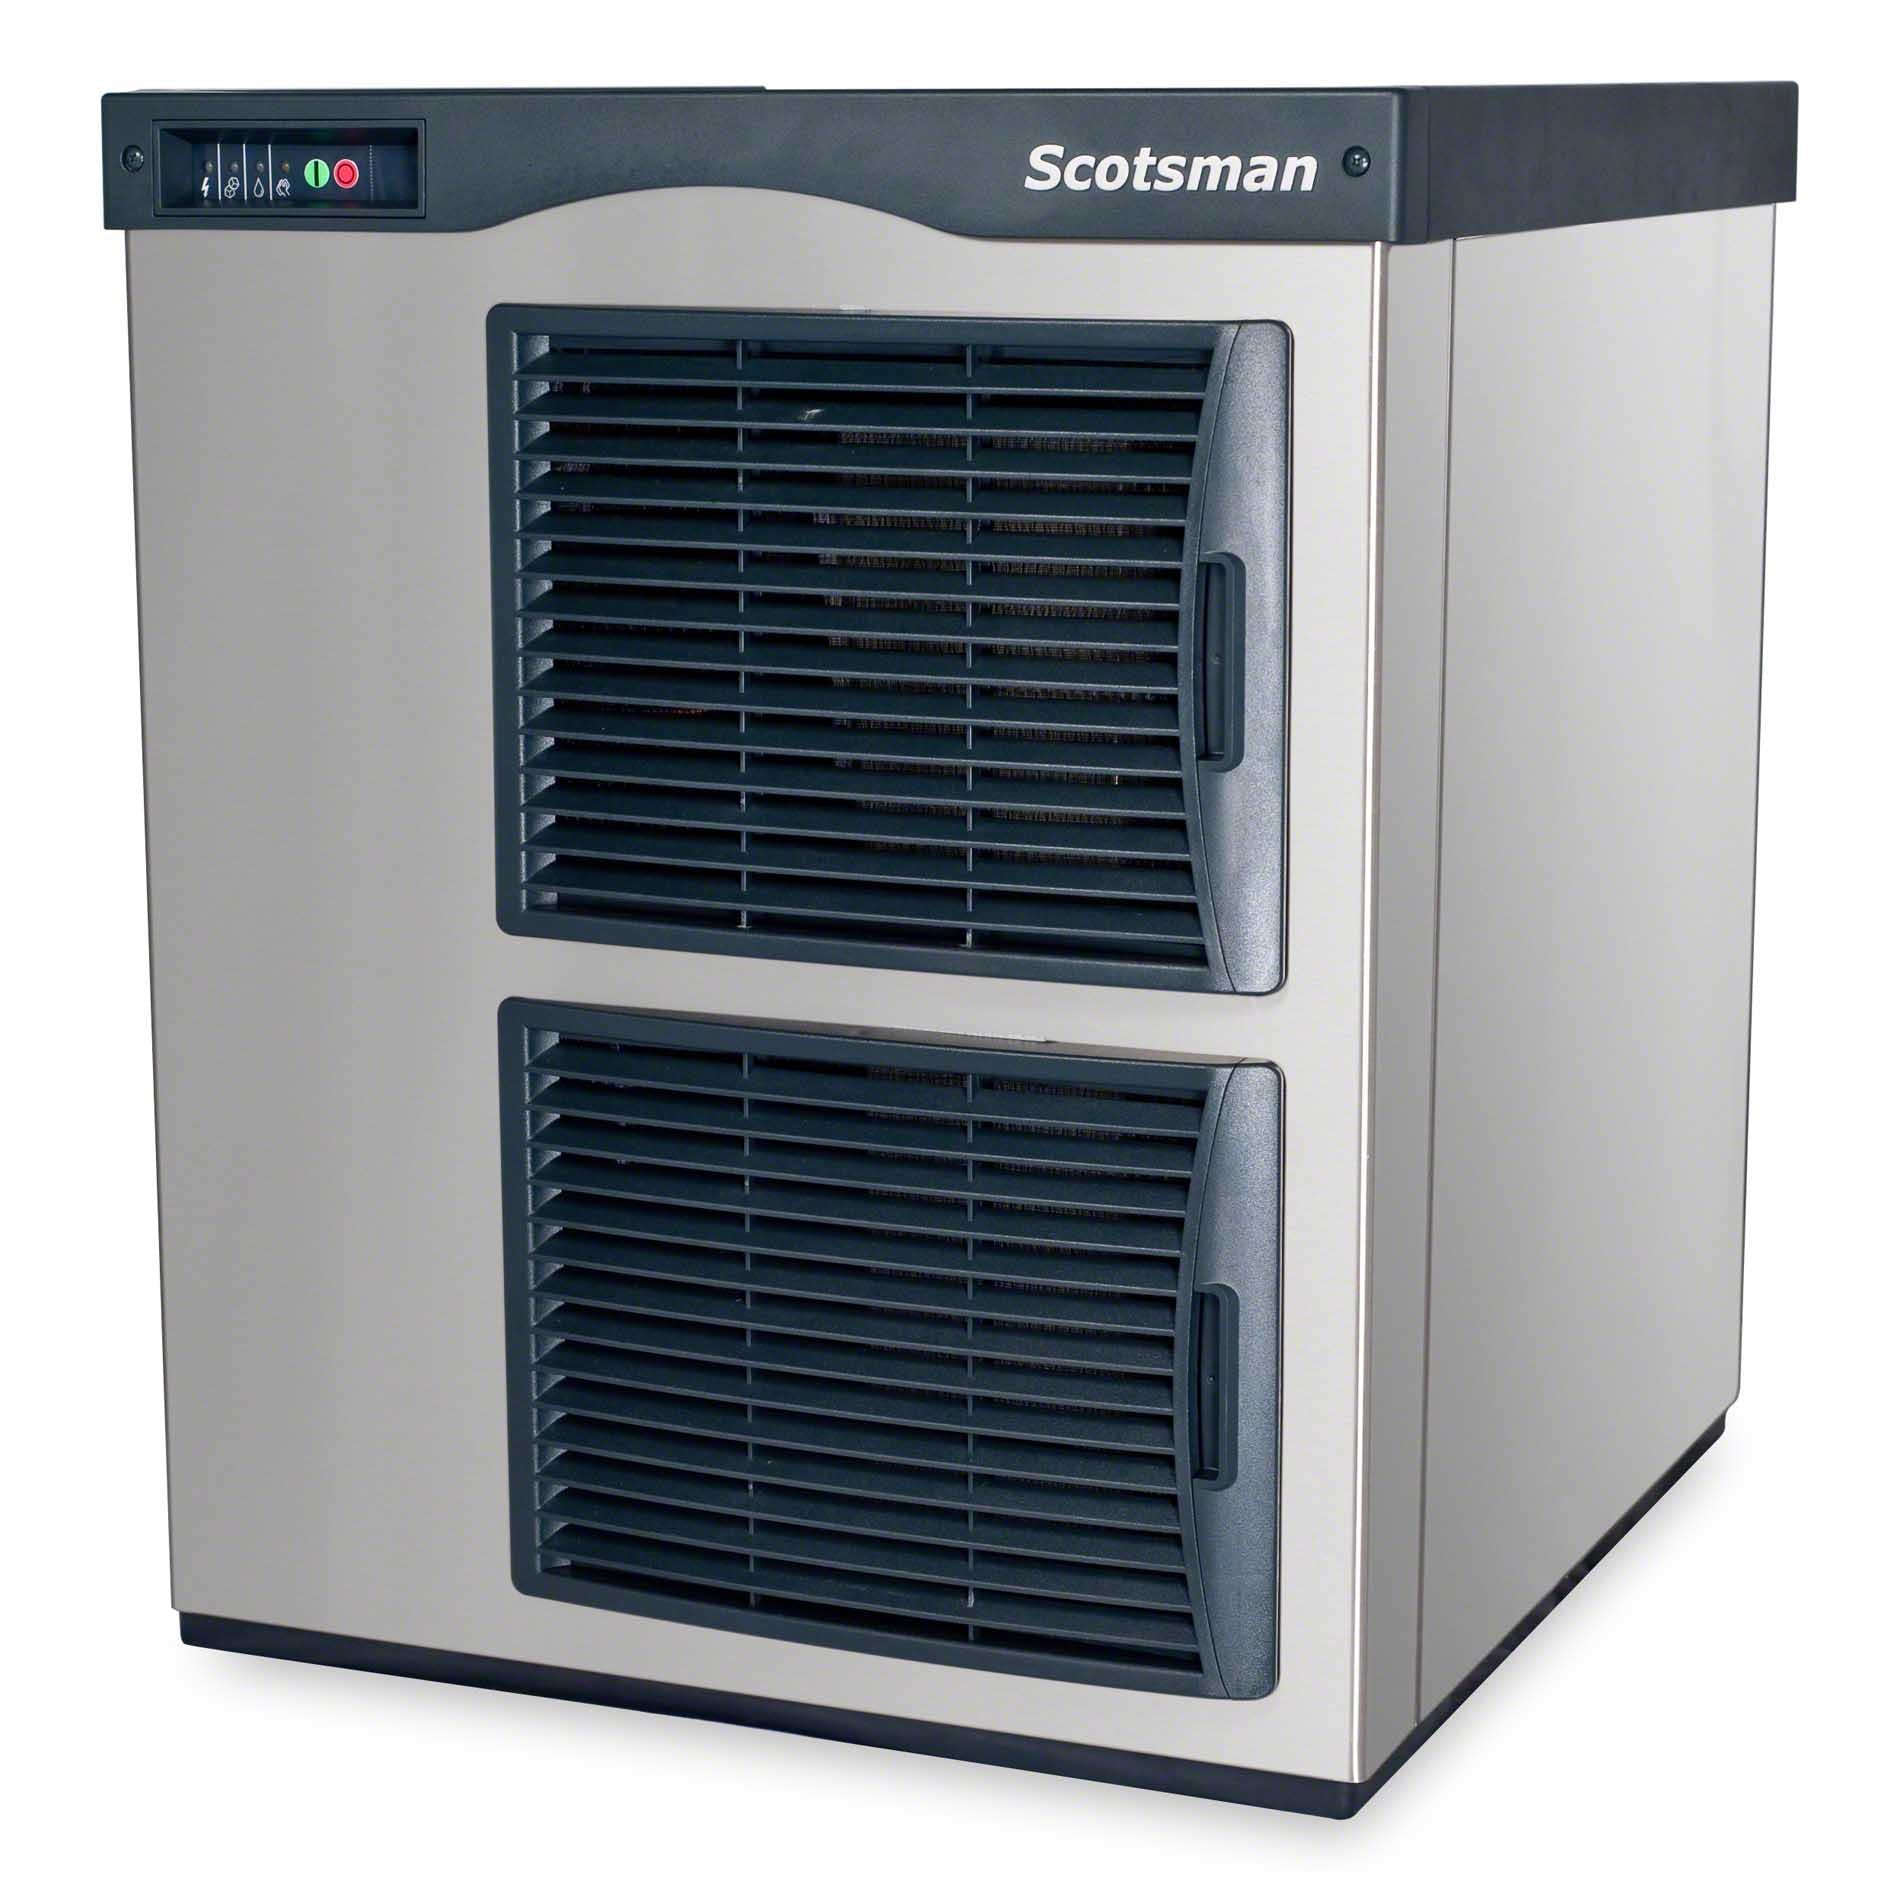 Scotsman - F1222A-32A 1100 lb Flake Ice Machine - Prodigy Series - sold by Food Service Warehouse